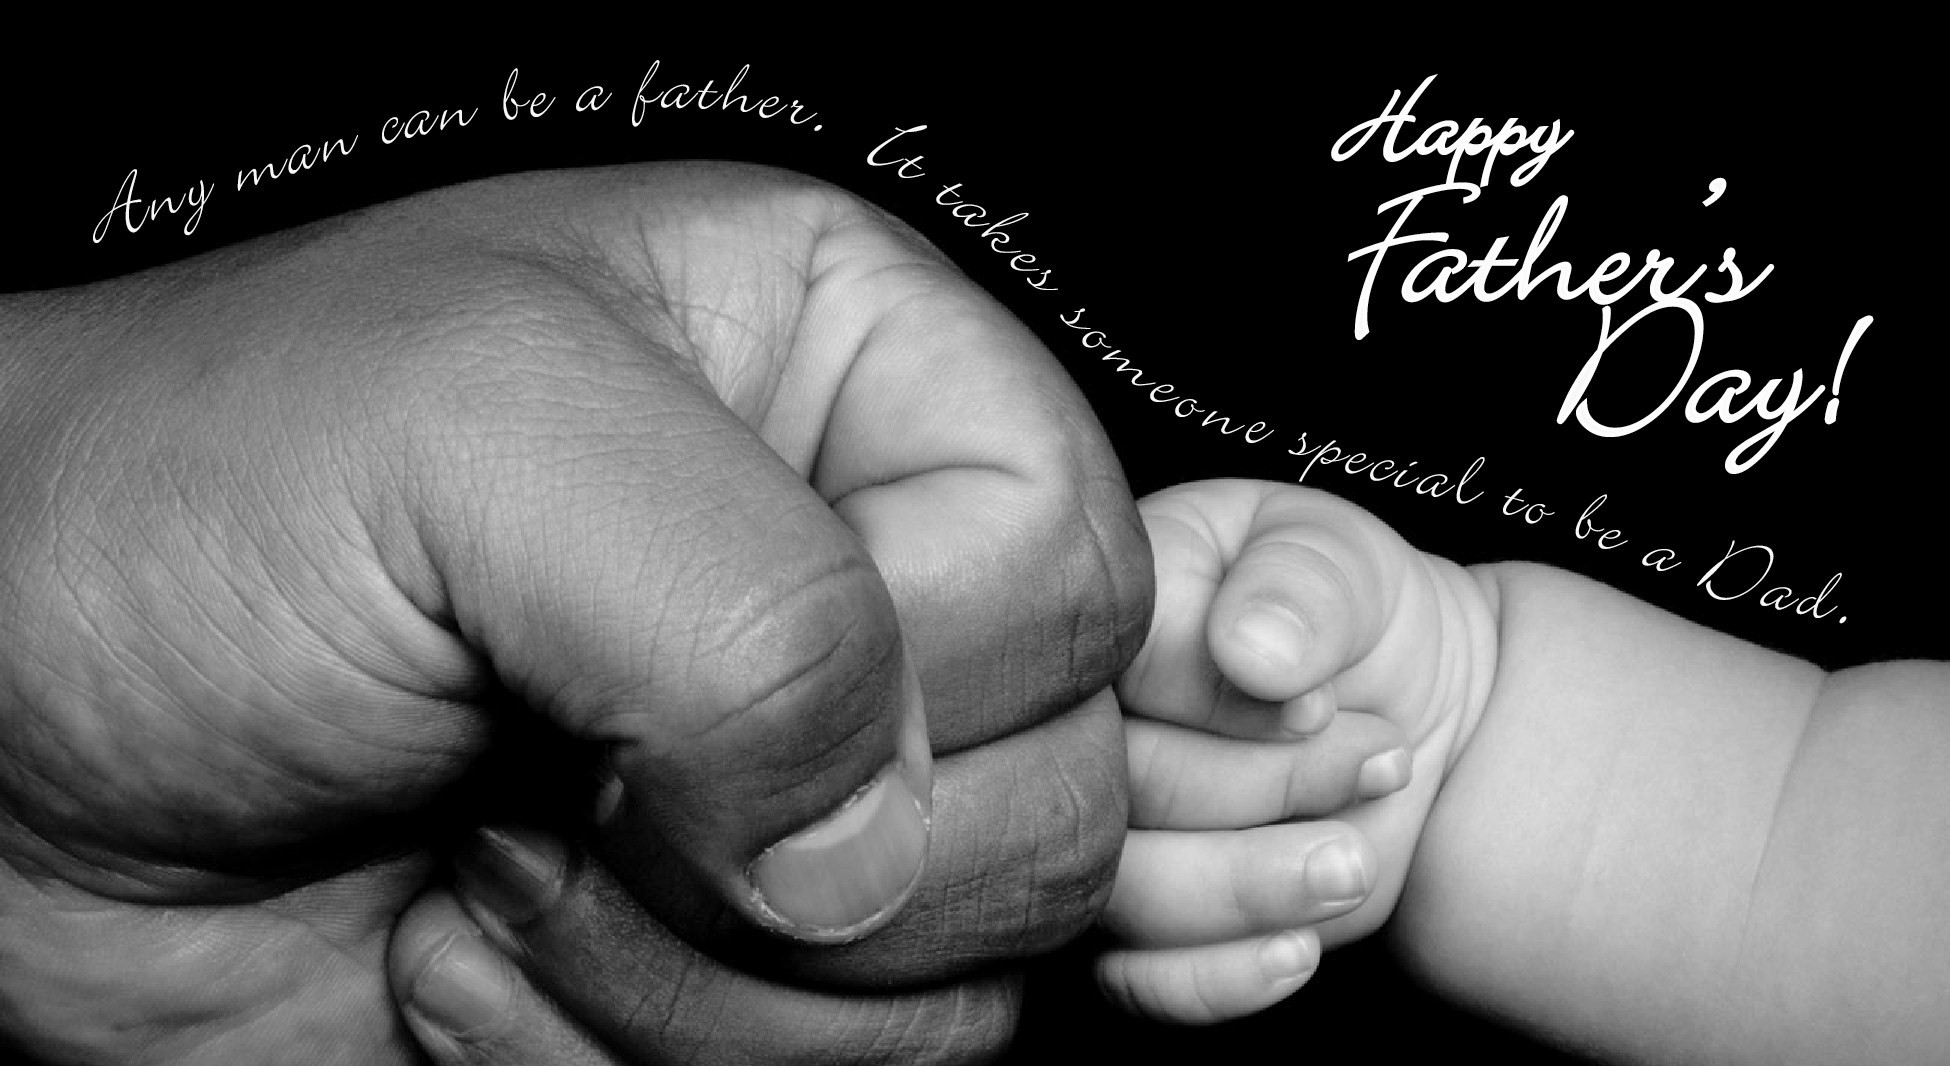 Fathers Day HD Wallpaper 1950x1066